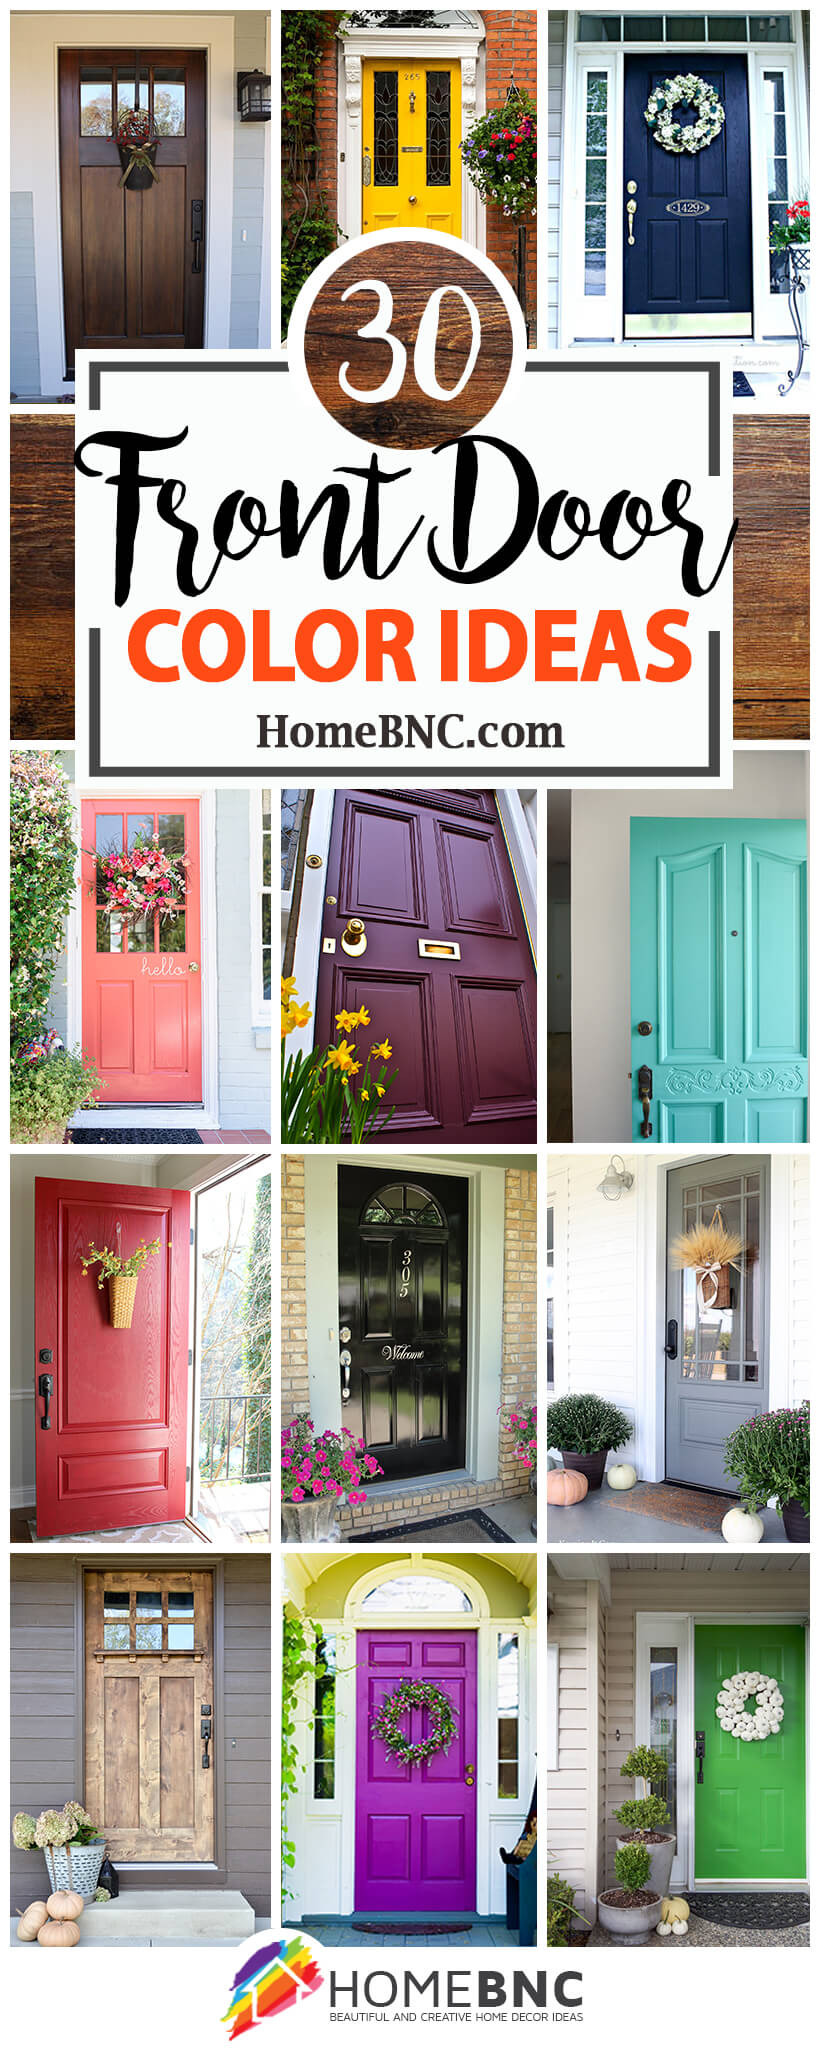 Color Of the Gate In House Best Of 30 Best Front Door Color Ideas and Designs for 2020